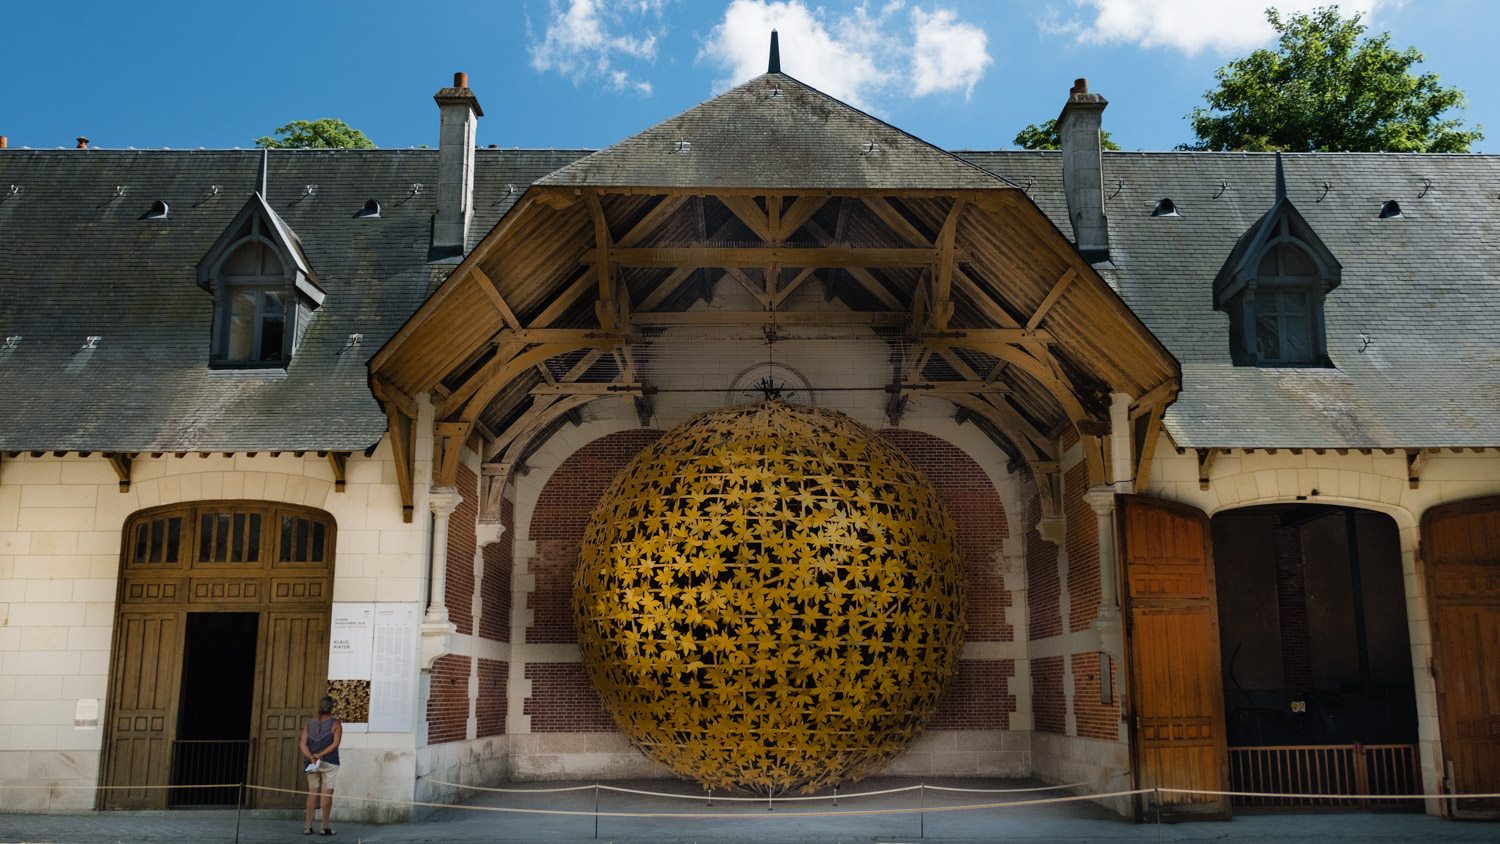 "Art installation by Klaus Pinter - Travel photography and guide by © Natasha Lequepeys for ""And Then I Met Yoko"". #loirevalley #france #travelguide #travelphotography #valdeloire"